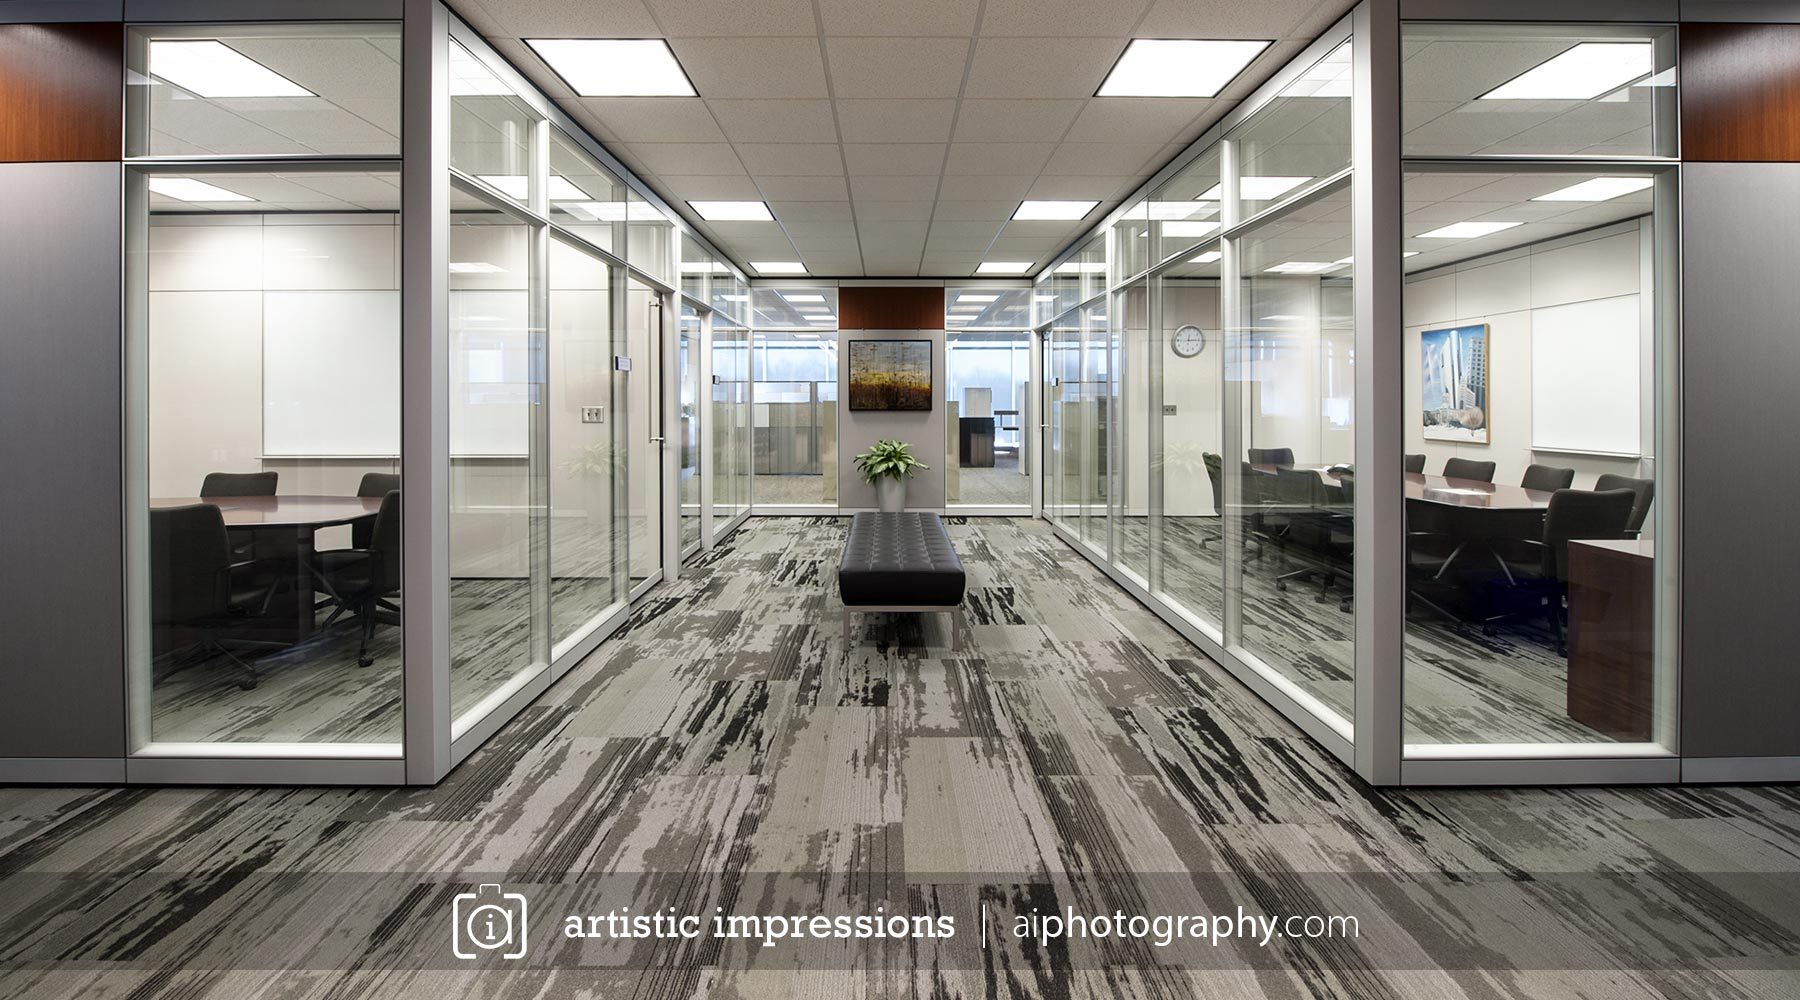 Commercial interior photography decoratingspecial